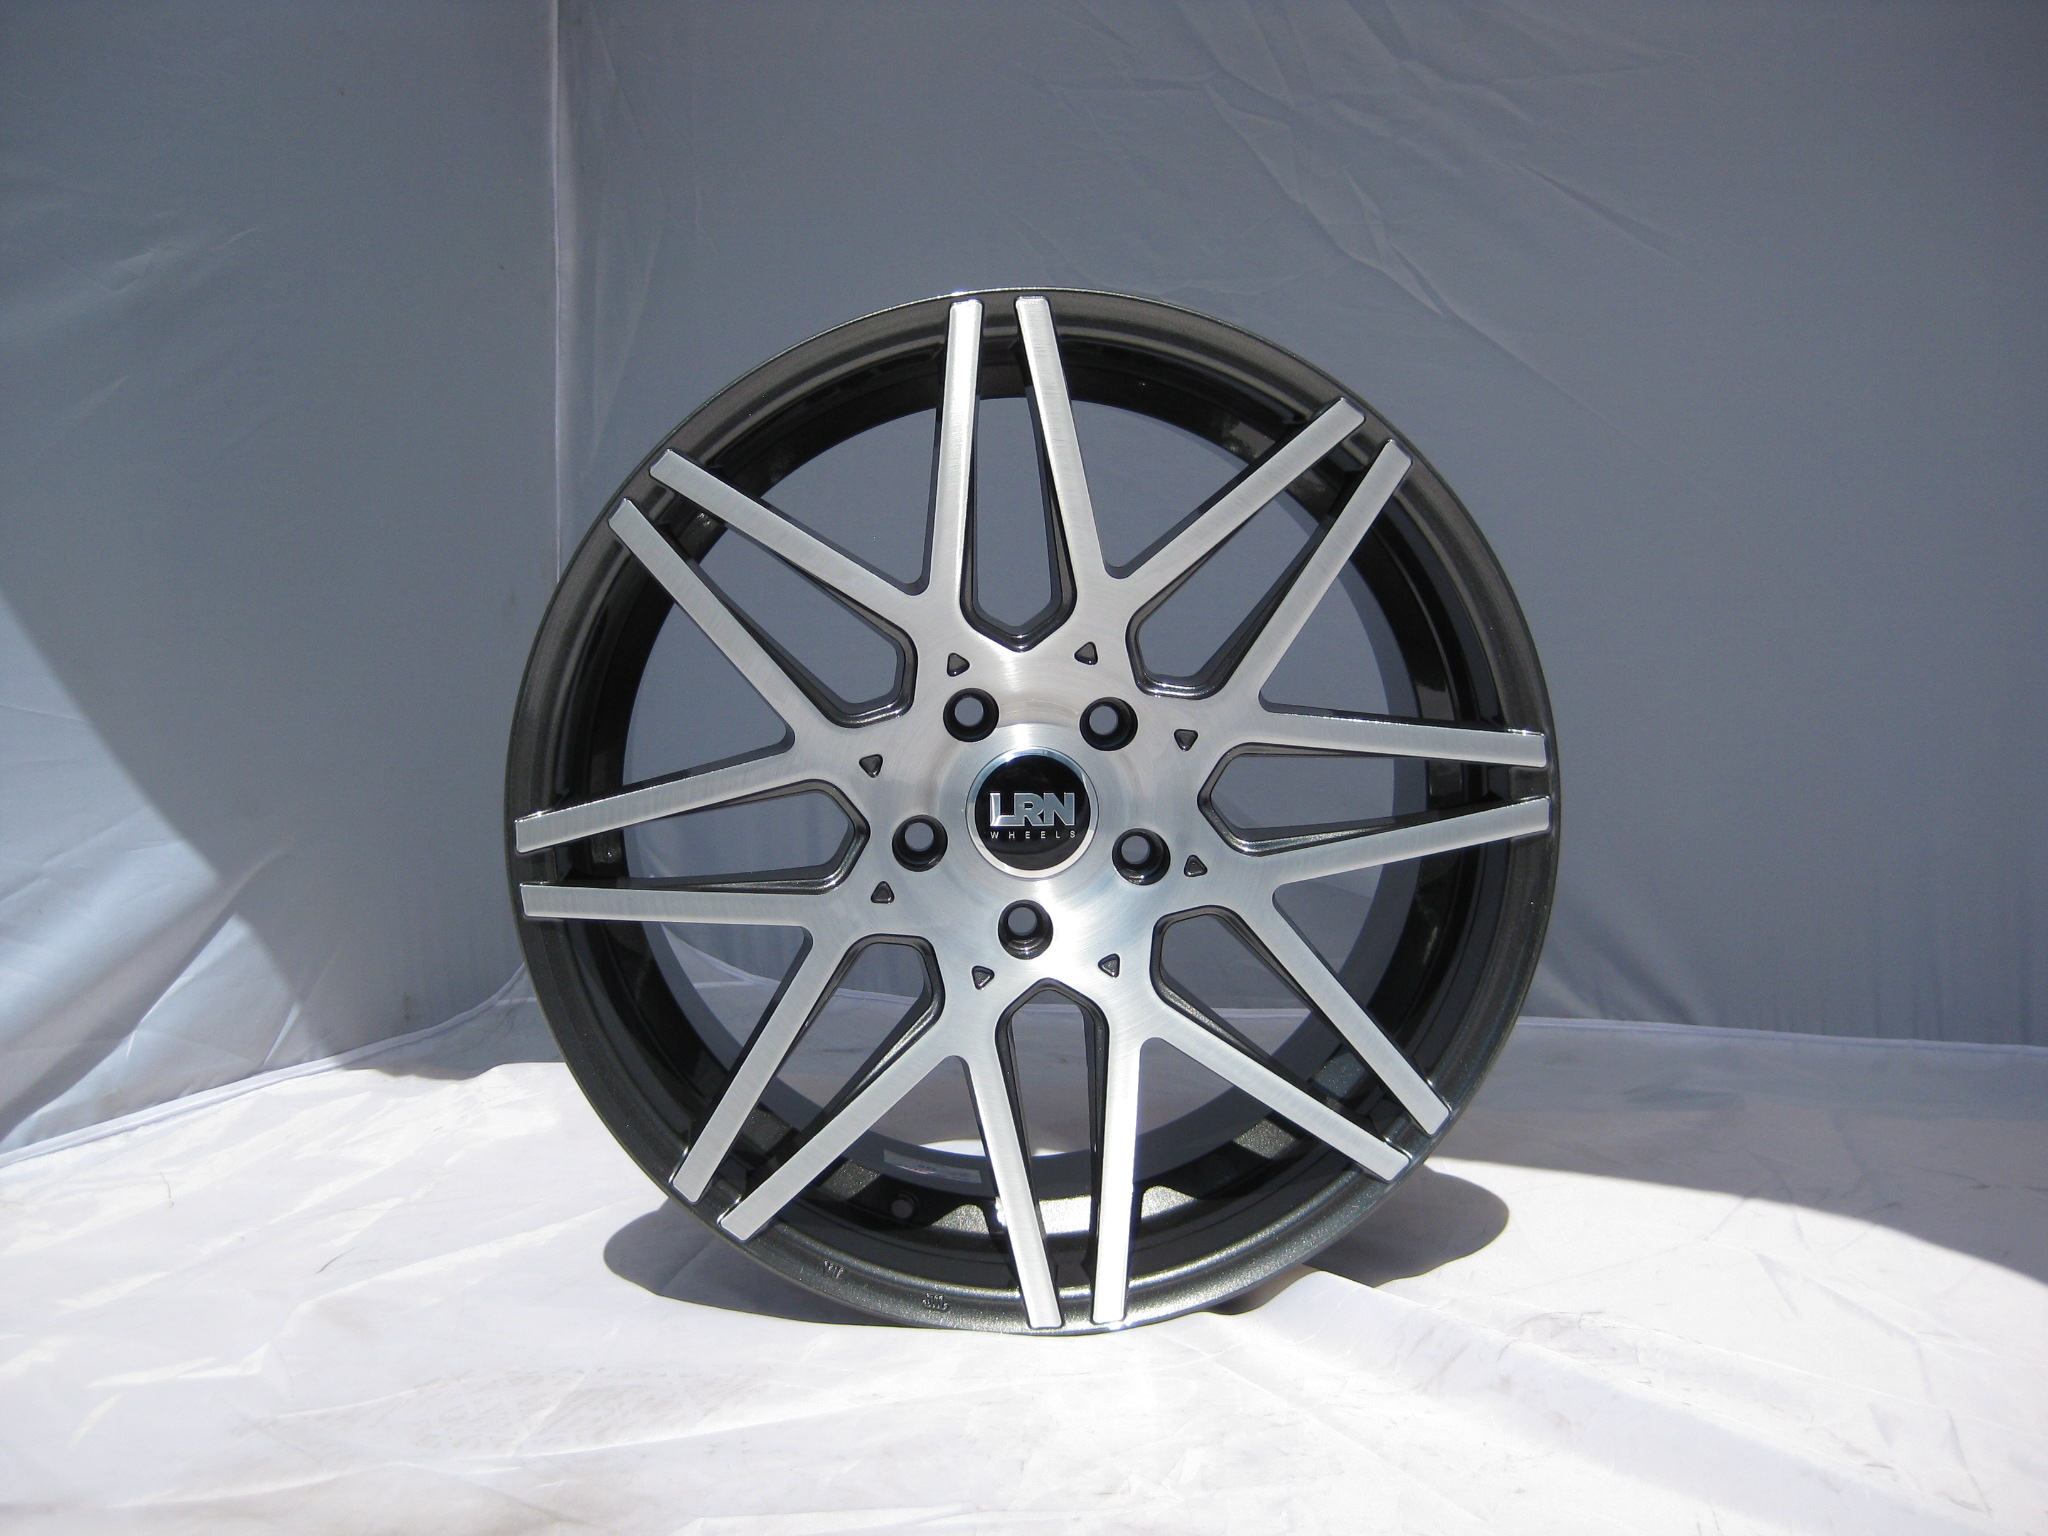 "NEW 19"" LRN BLADE ALLOY WHEELS IN METALLIC GUNMETAL WITH BRUSHED FACE, 8.5"" ALL ROUND"